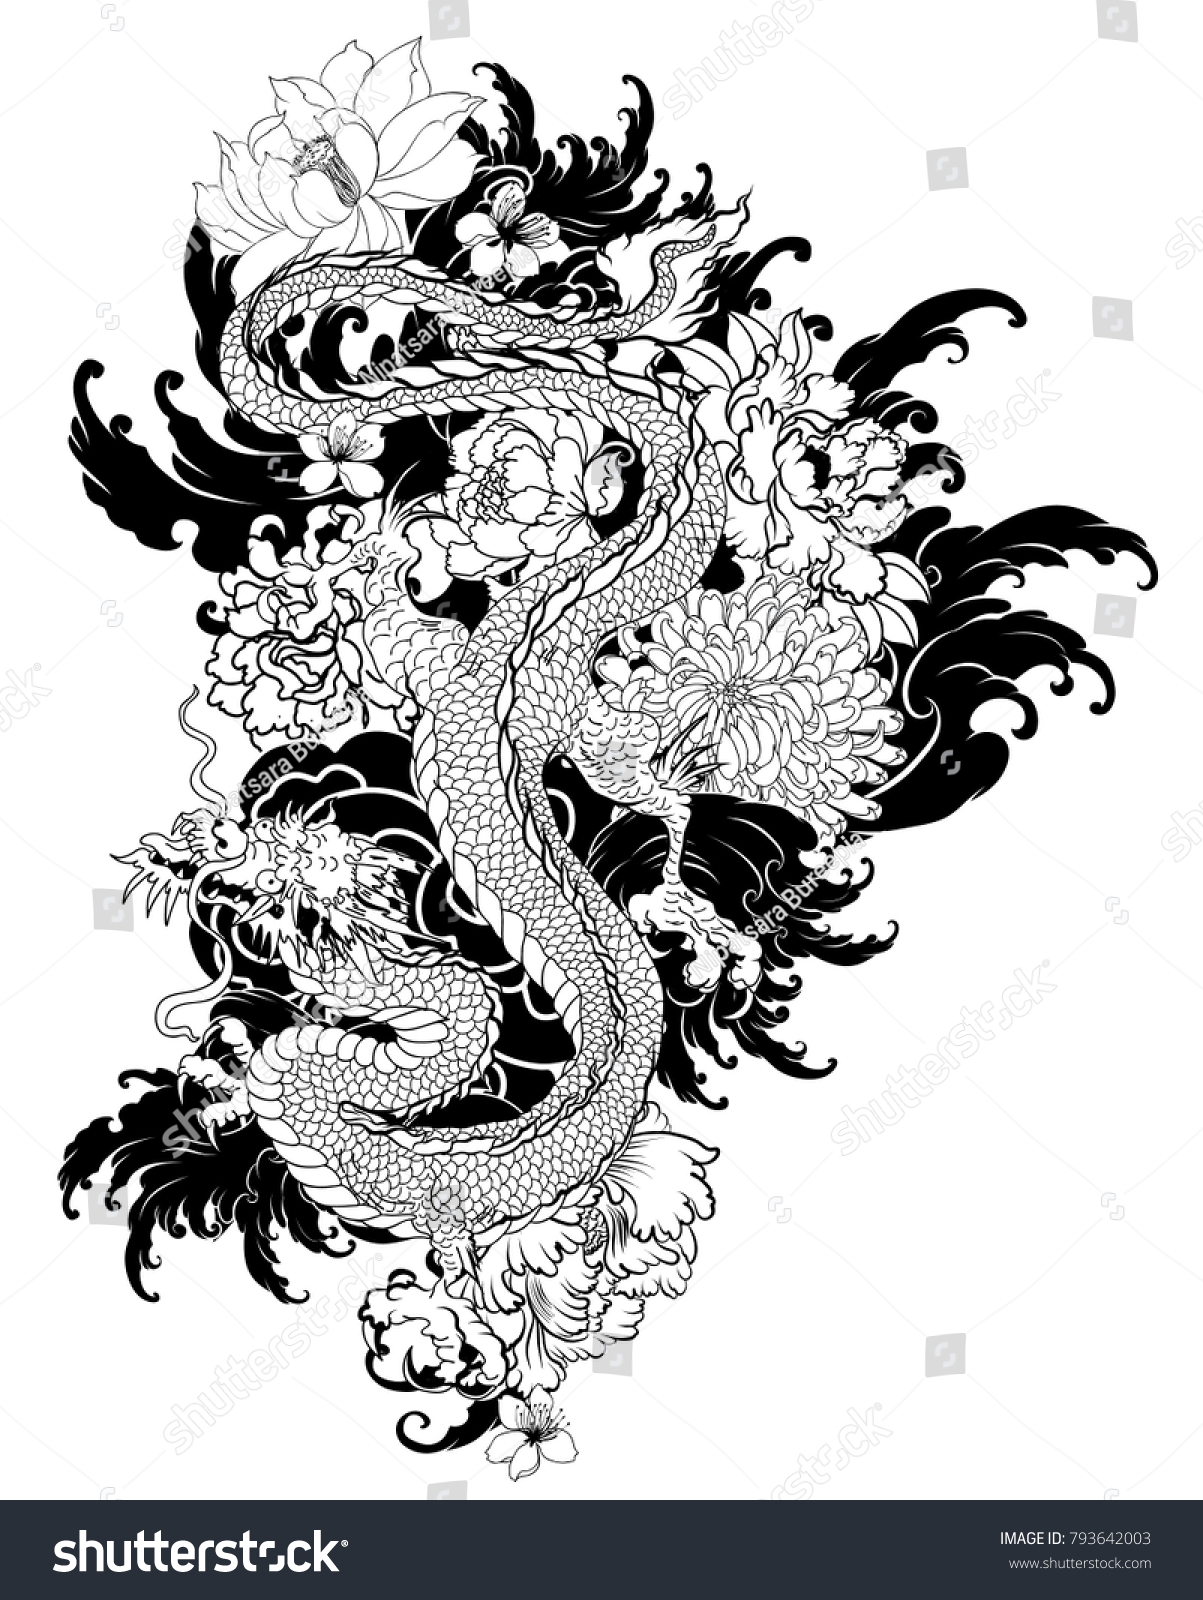 Old Dragon Flower Tattooillustration Chinese Dragon Stock Vector Royalty Free 793642003